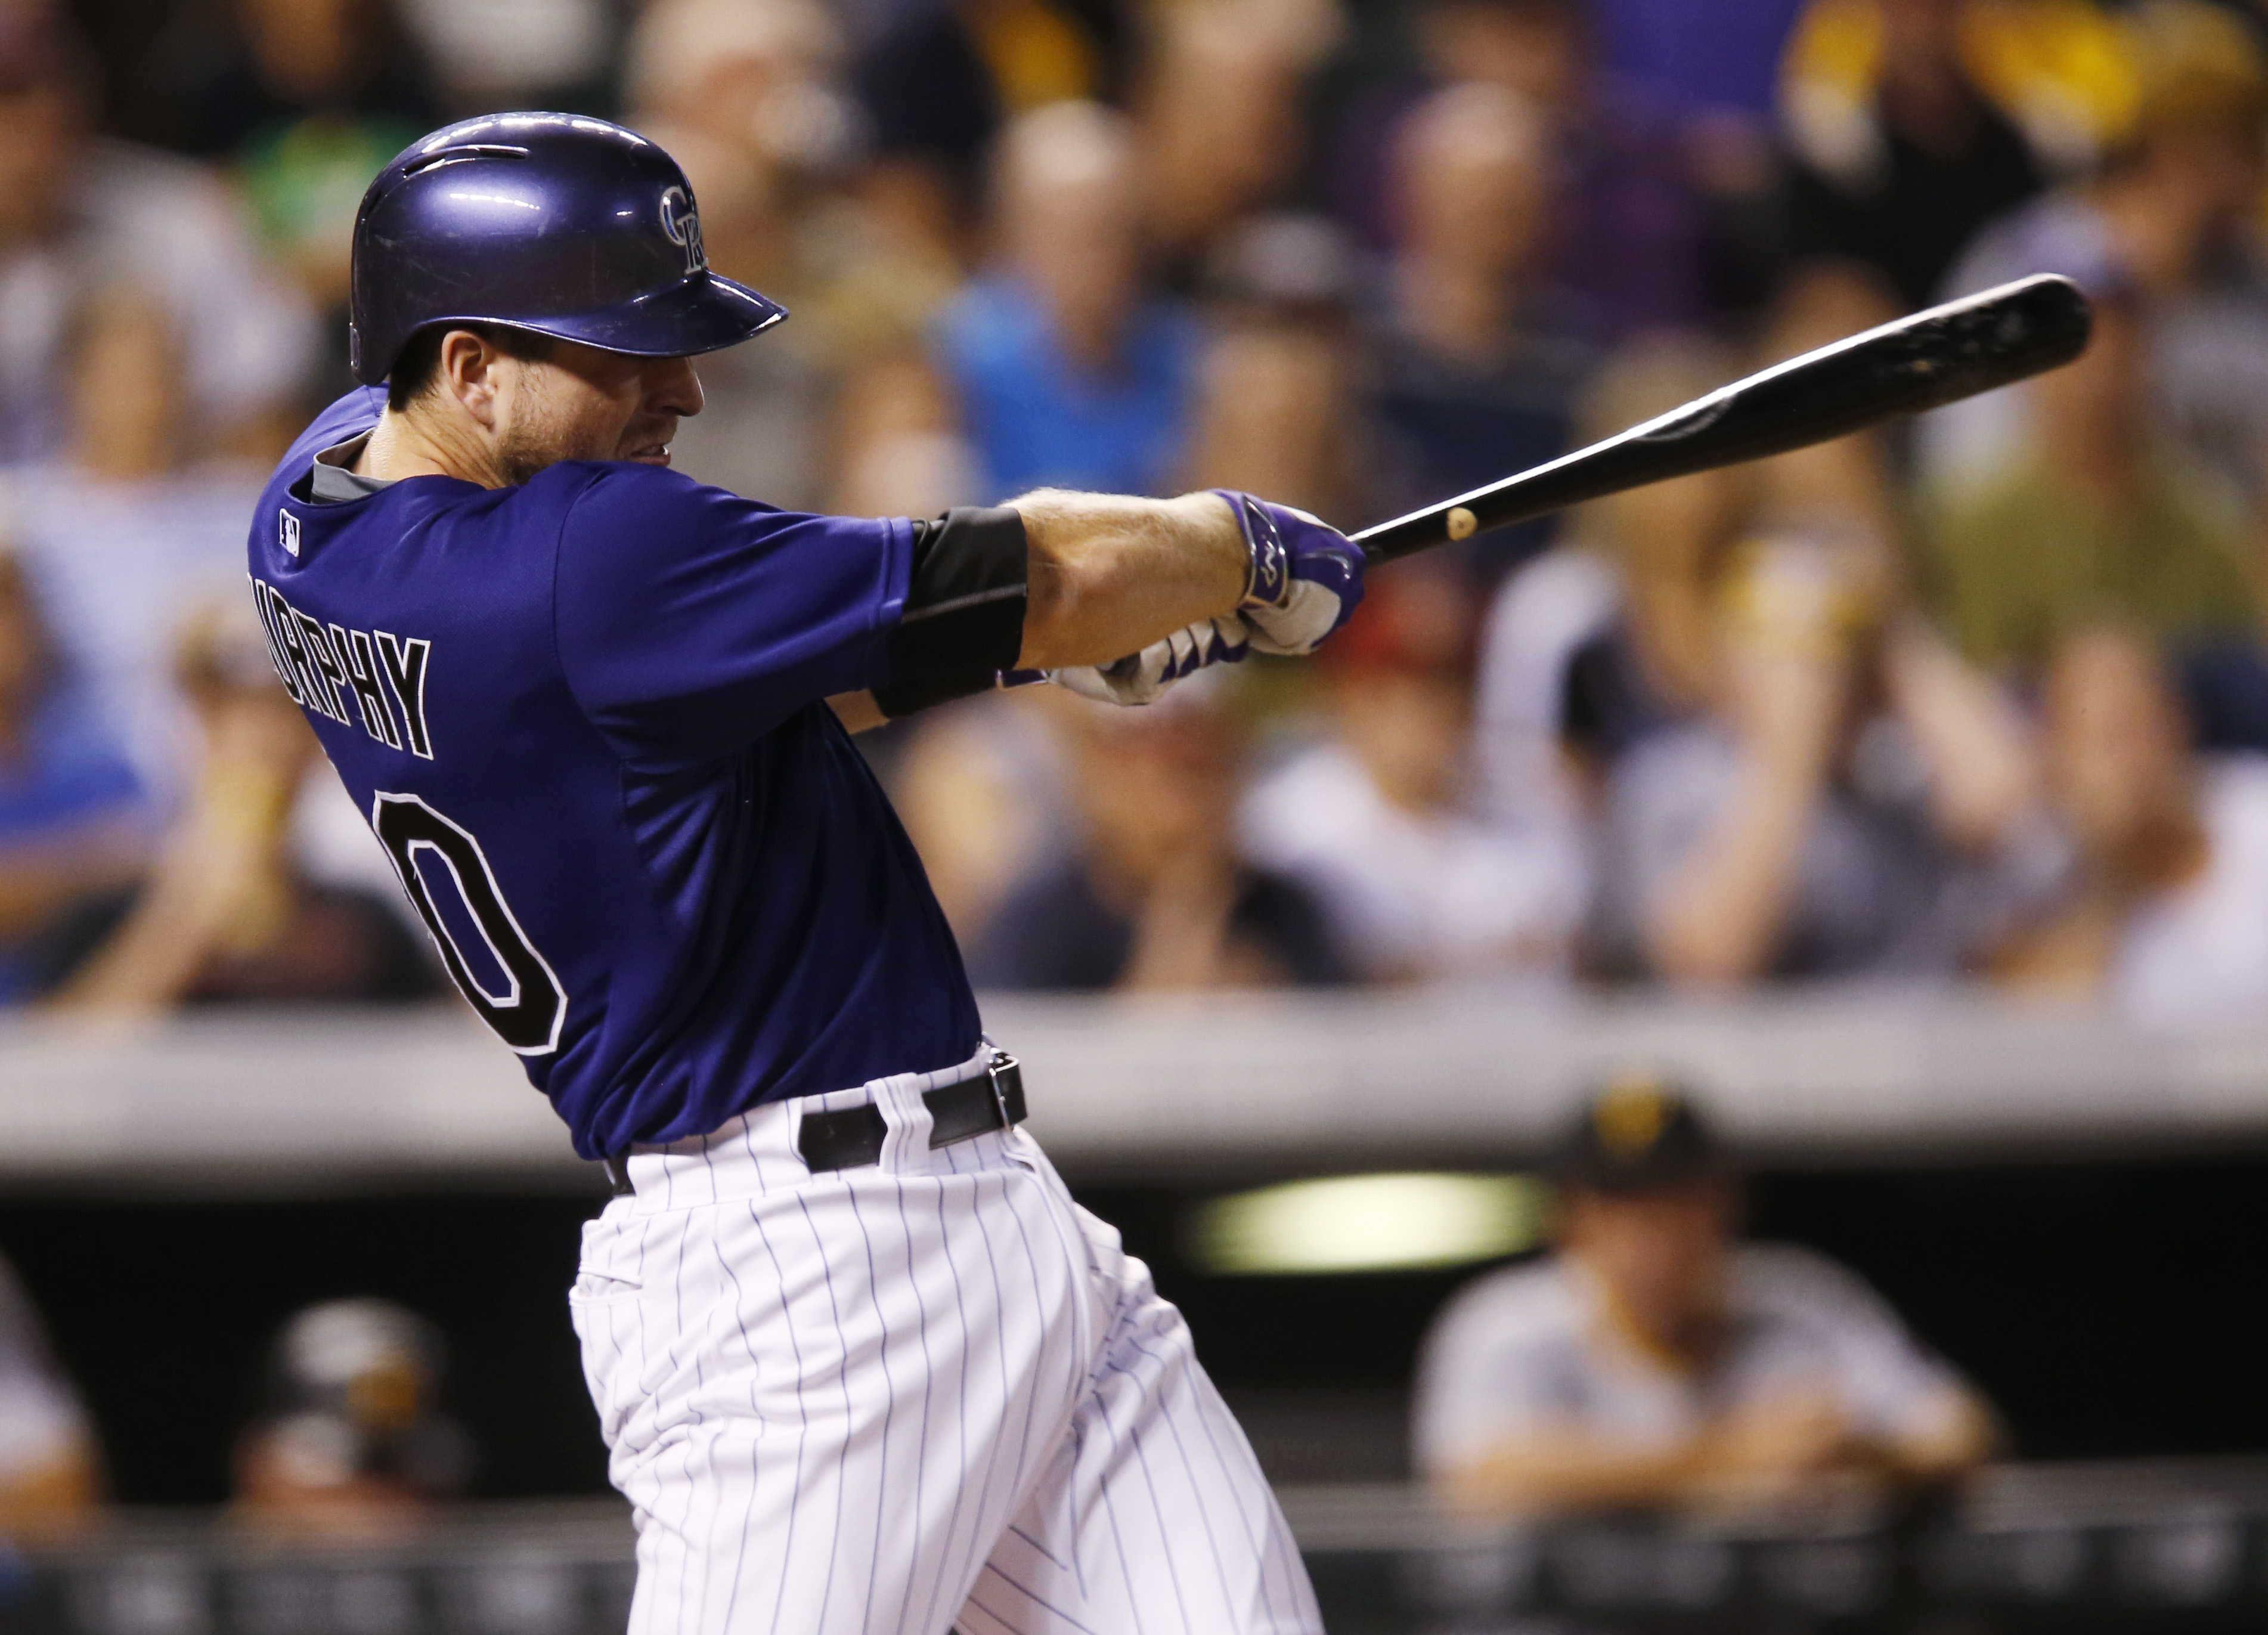 Colorado Rockies' Tom Murphy connects for a three-run home run off Pittsburgh Pirates starting pitcher A.J. Burnett in the fifth inning of a baseball game, Monday, Sept. 21, 2015, in Denver. (AP Photo/David Zalubowski)